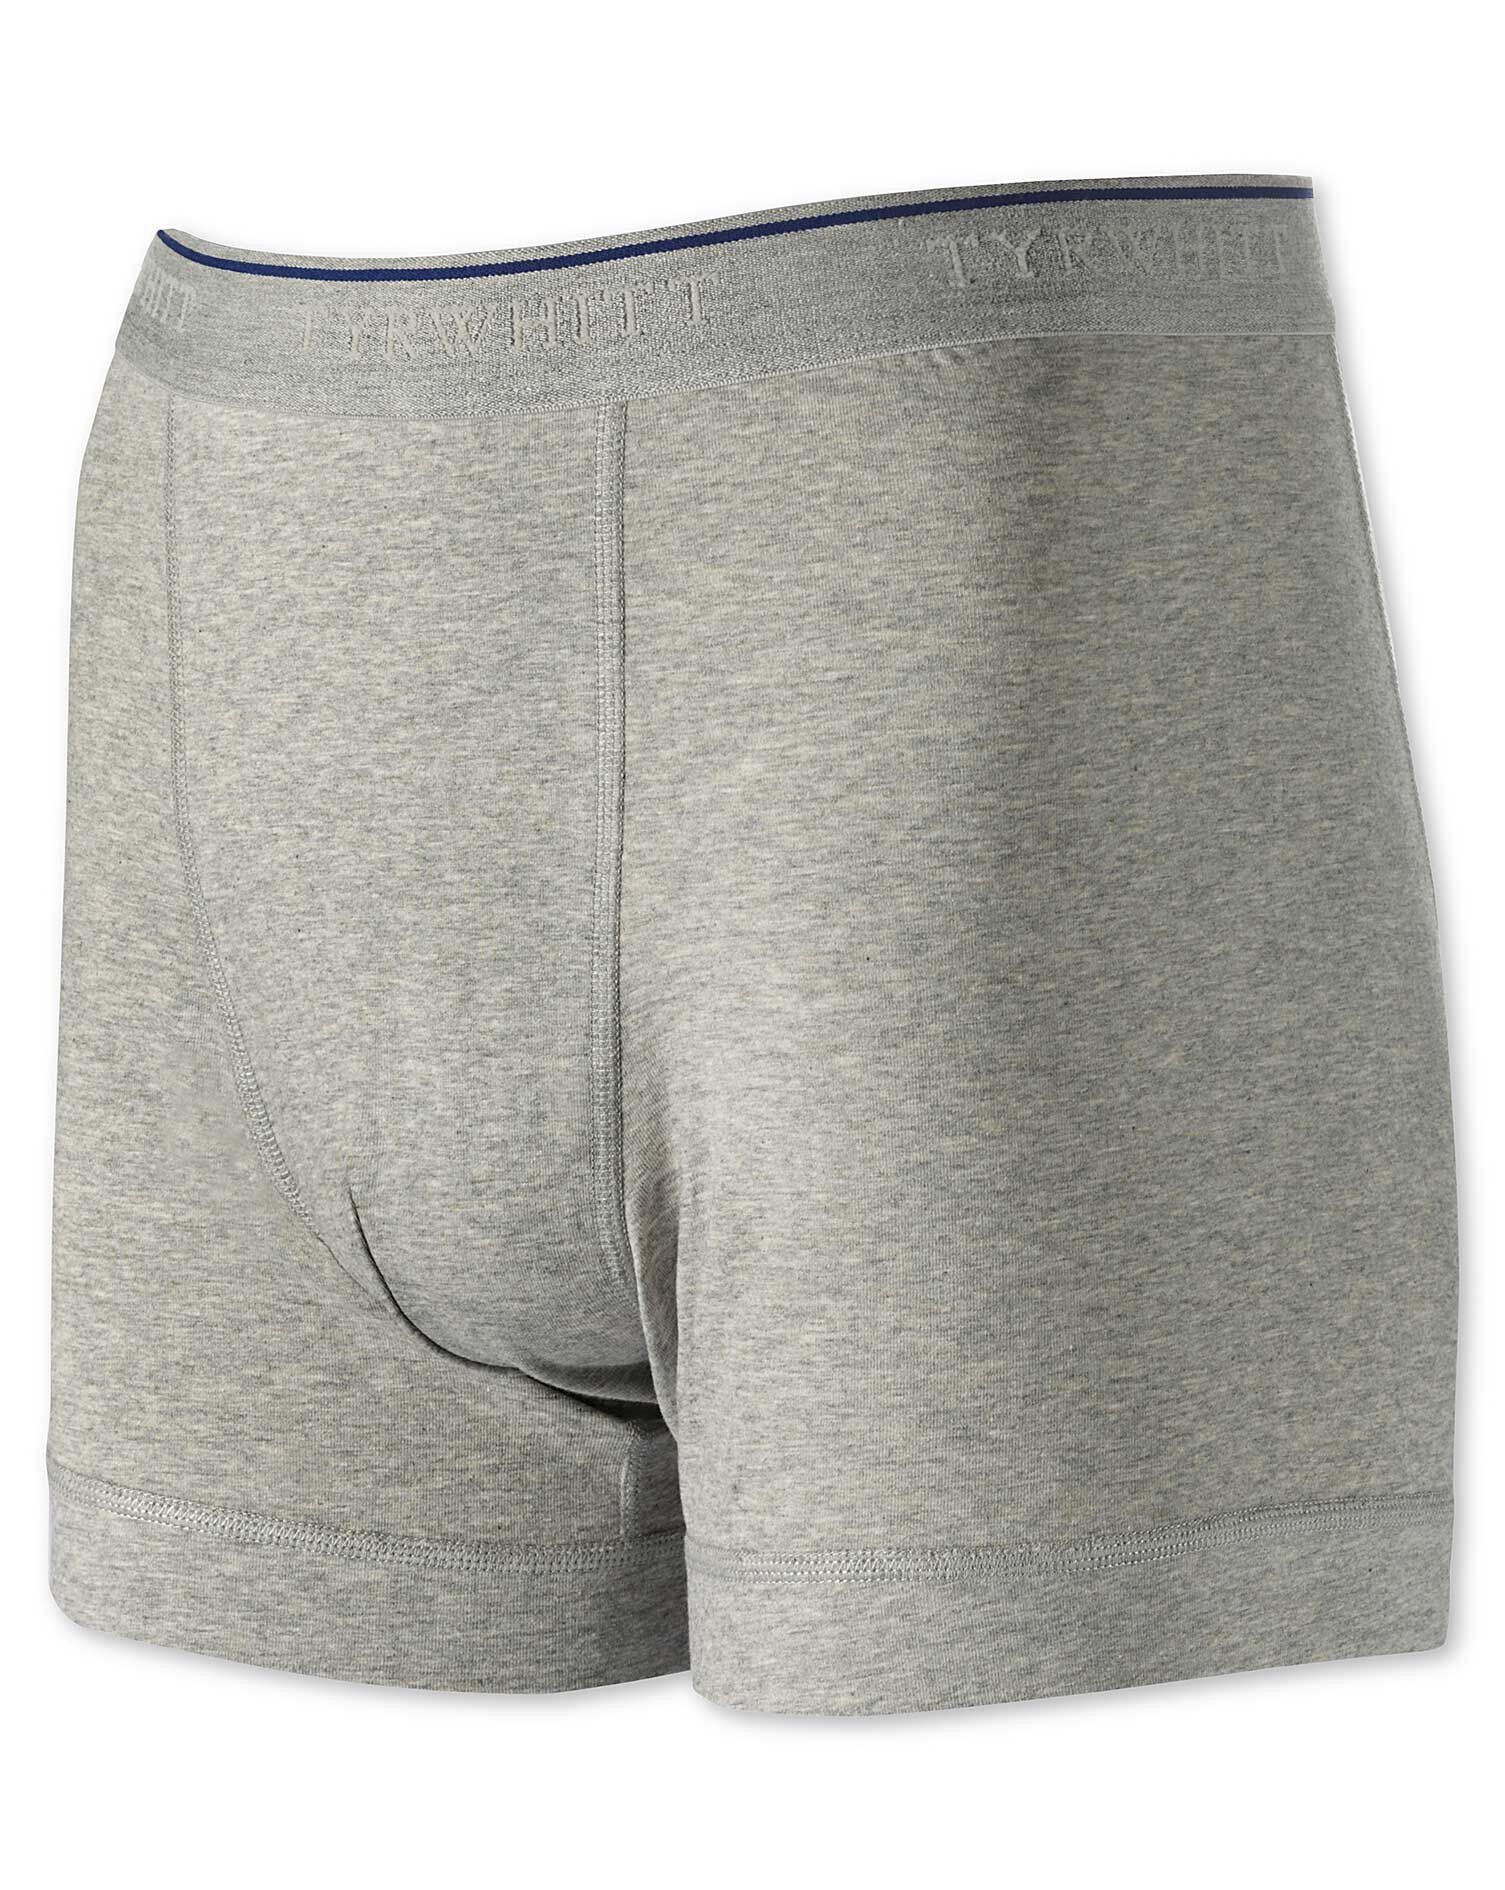 Grey Cotton Stretch Jersey Trunks Size Small by Charles Tyrwhitt